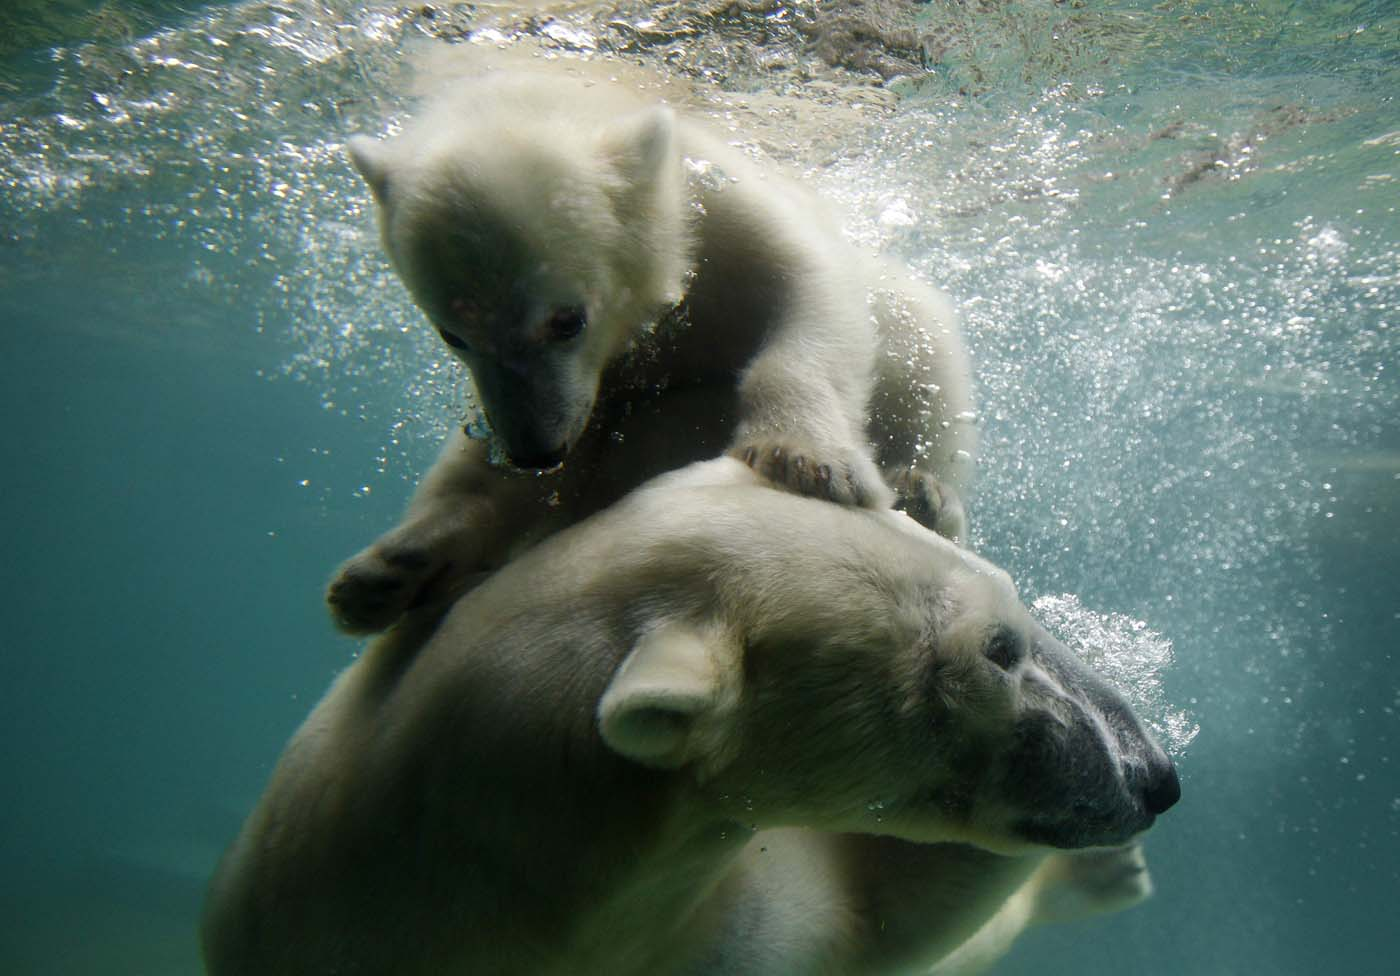 Polar bear cub Anori swims with her mother Vilma in their enclosure at the zoo in Wuppertal June 6, 2012. Anori was born on January 4, 2012. (Ina Fassbender/Reuters)